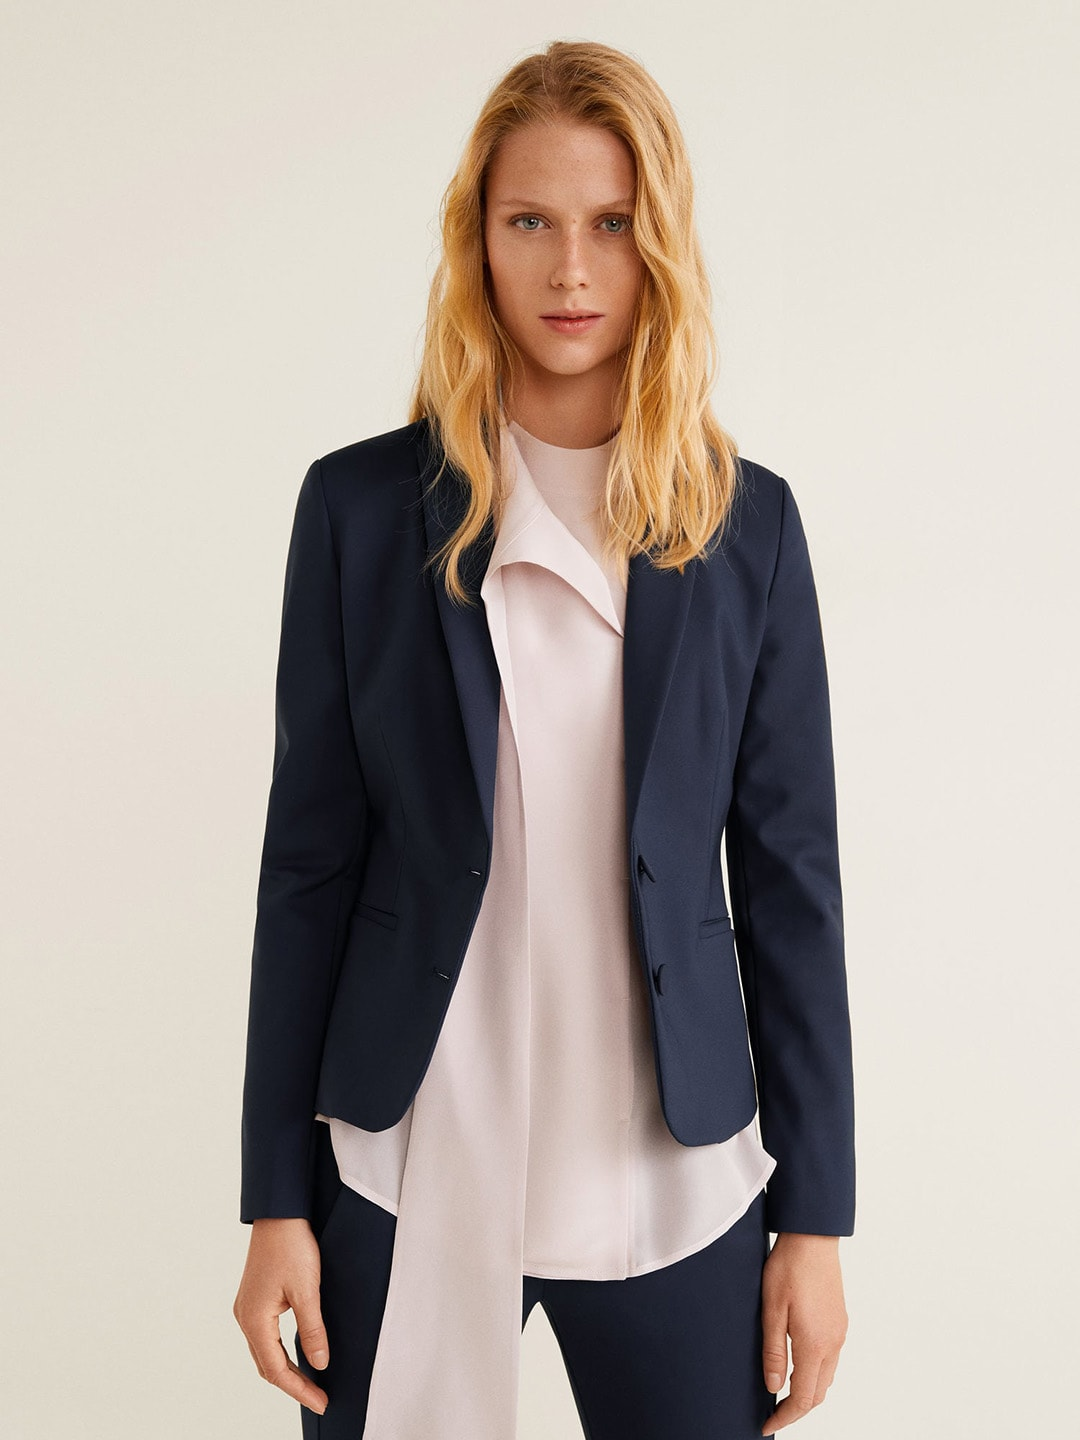 c5ca147ba74c1 Women Blazers Online - Buy Blazers for Women in India